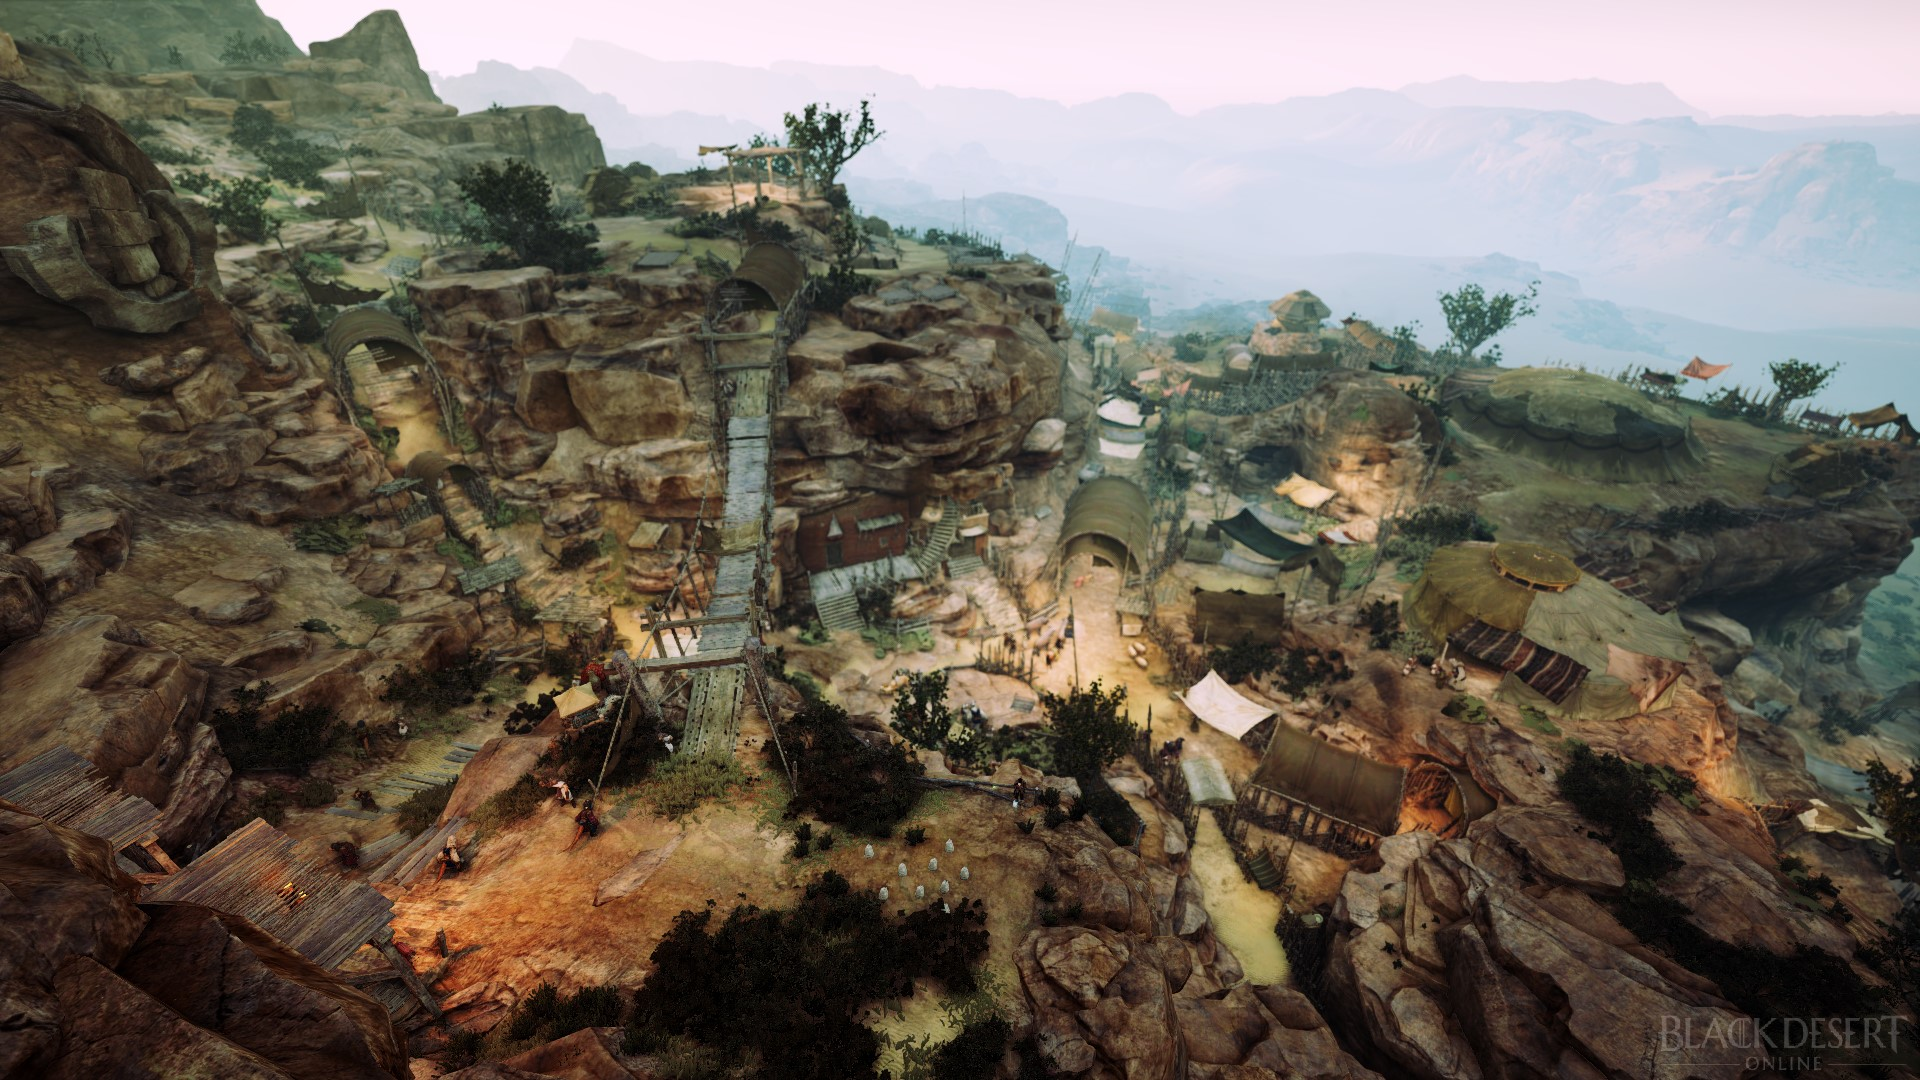 Sand Grain Bazaar | Black Desert Wiki | FANDOM powered by Wikia